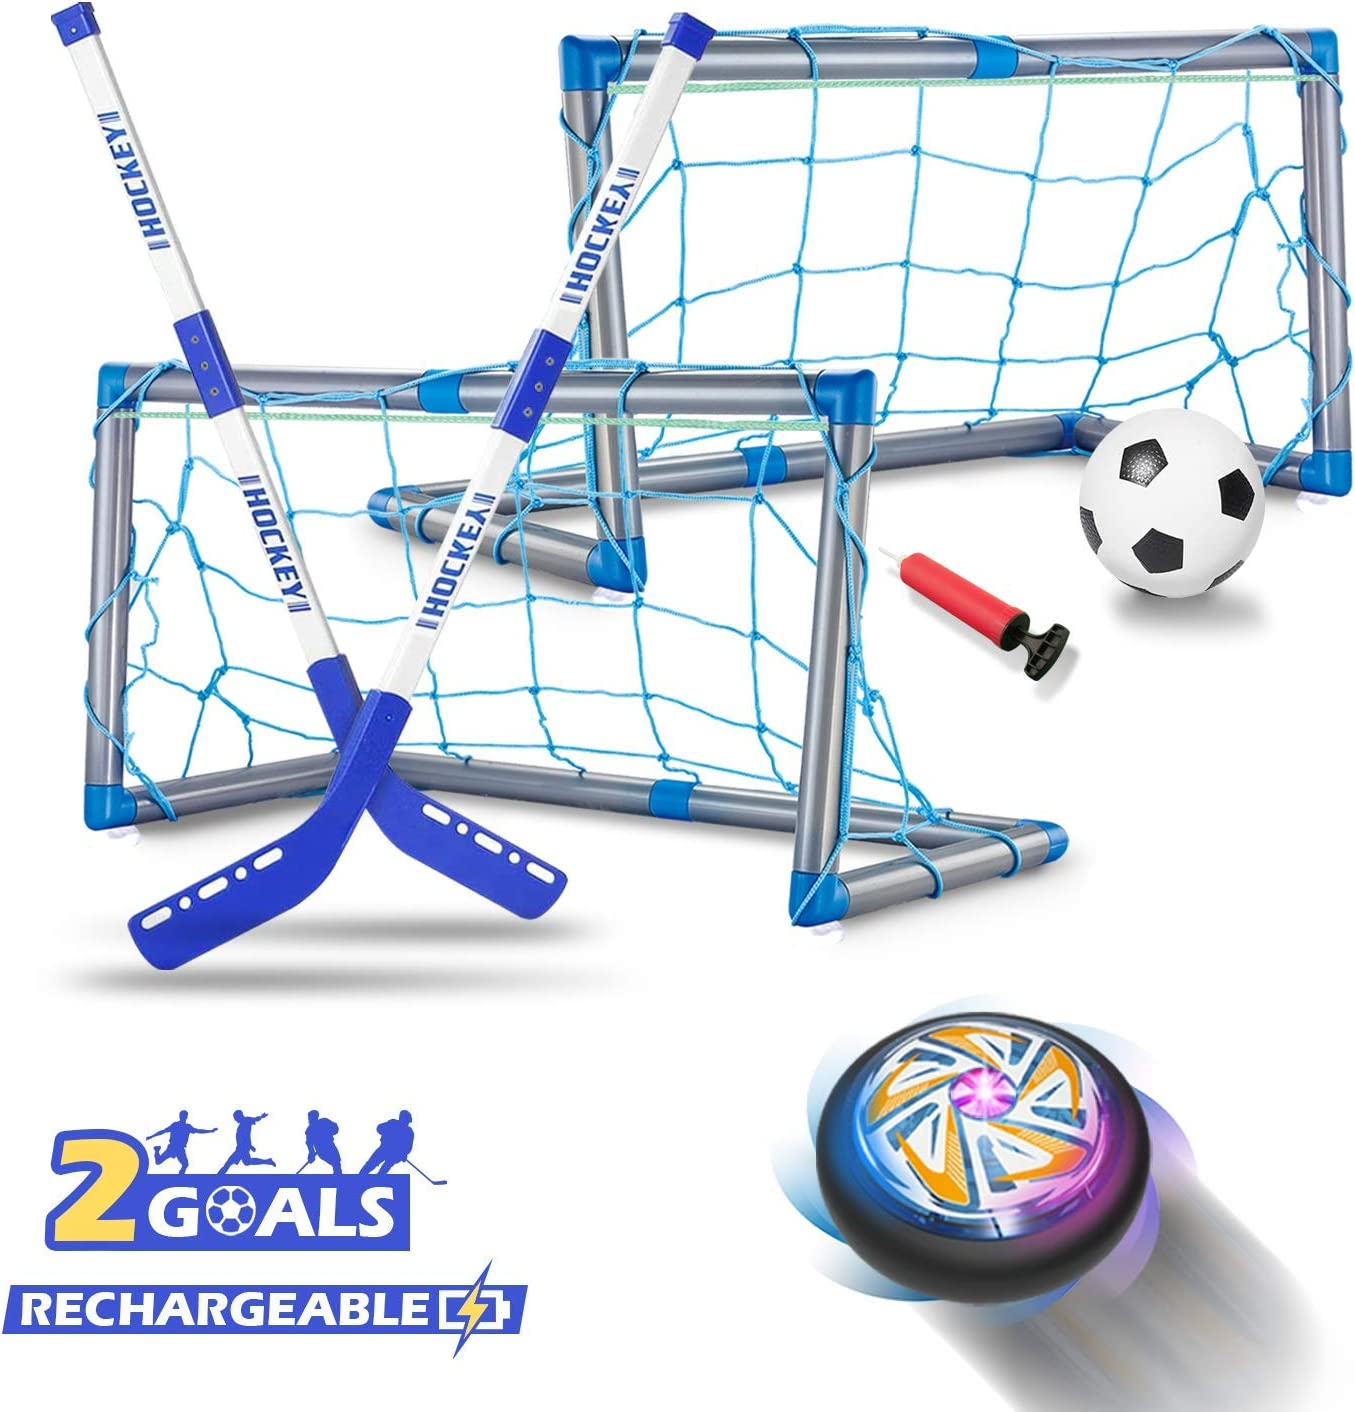 RACPNEL Indoor & Outdoor Games Toys for Boys, Rechargeable Hover Hockey & Soccer Ball Set Toys for Kids, with 2 Goals & 2 Hockey Sticks & Inflatable Ball,Sports Gifts For Boys Girls Age 3 4 5 6 7 8 9+